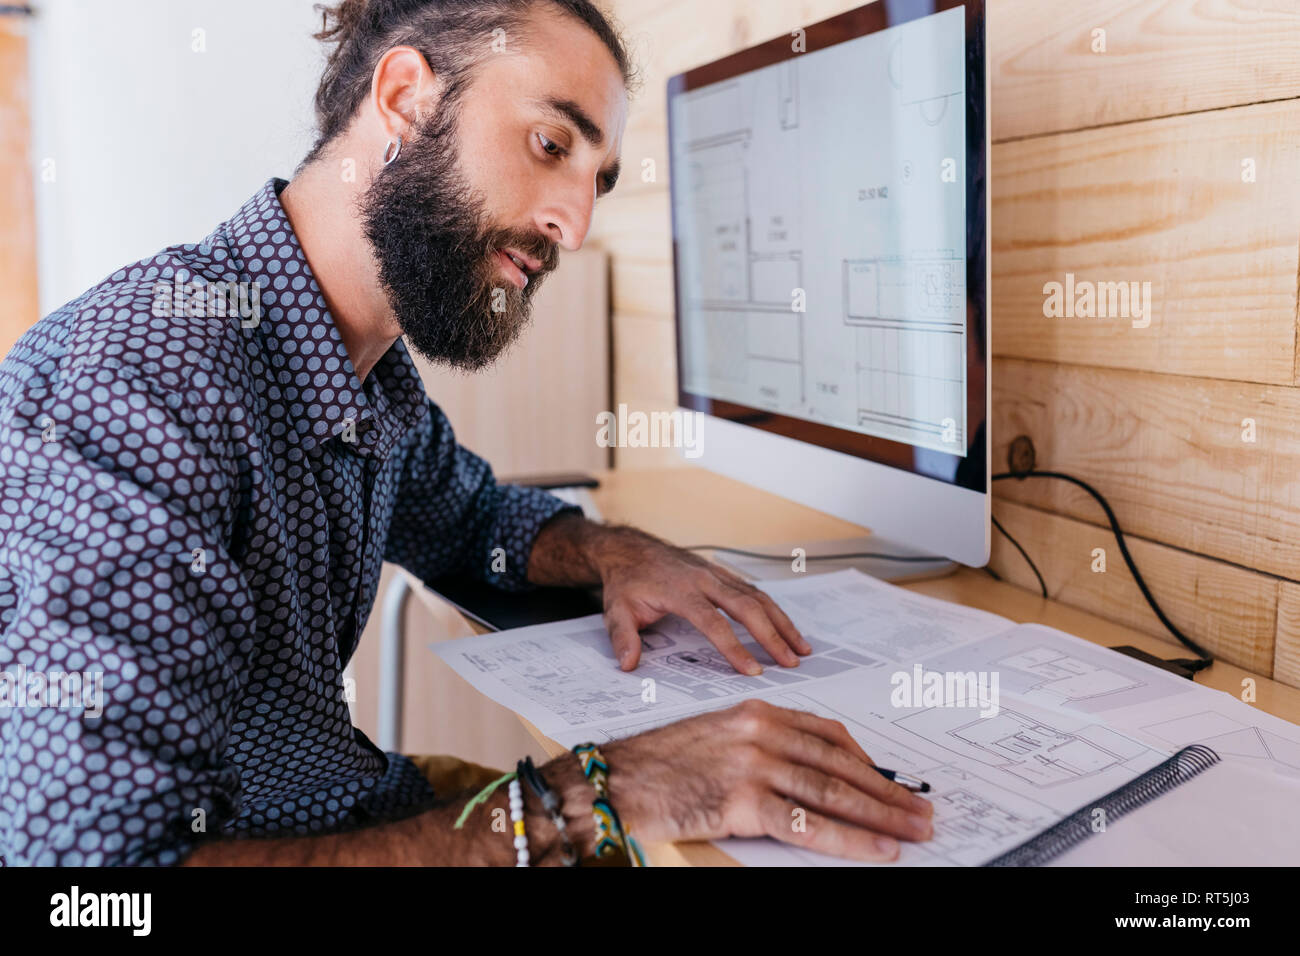 Young architect working at home with blueprints and computer - Stock Image